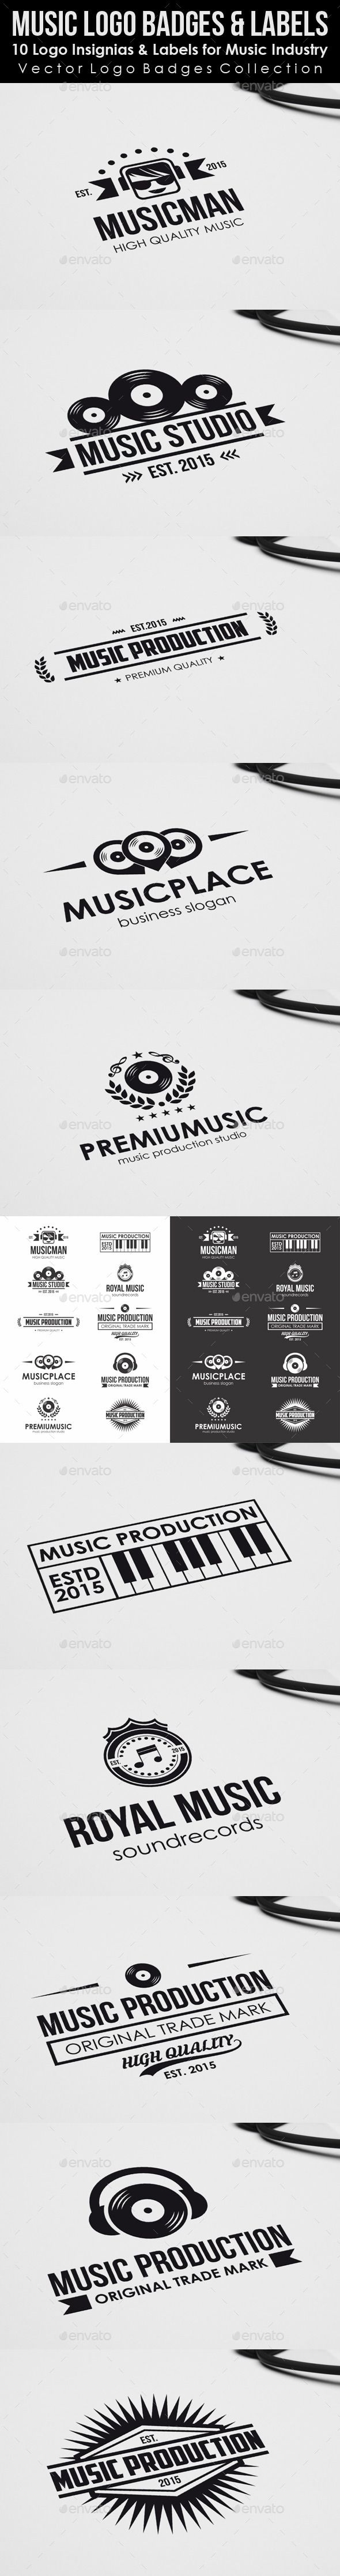 10 Logo Insignias & Labels for Music Industry. An excellent clean and professional logo / badges insignia highly suitable for music, audio engineering, recording studio, entertainment, sound technology or any other business related. You can use this logo badges for music app, music program, music producers, headphone products or many other music related business.